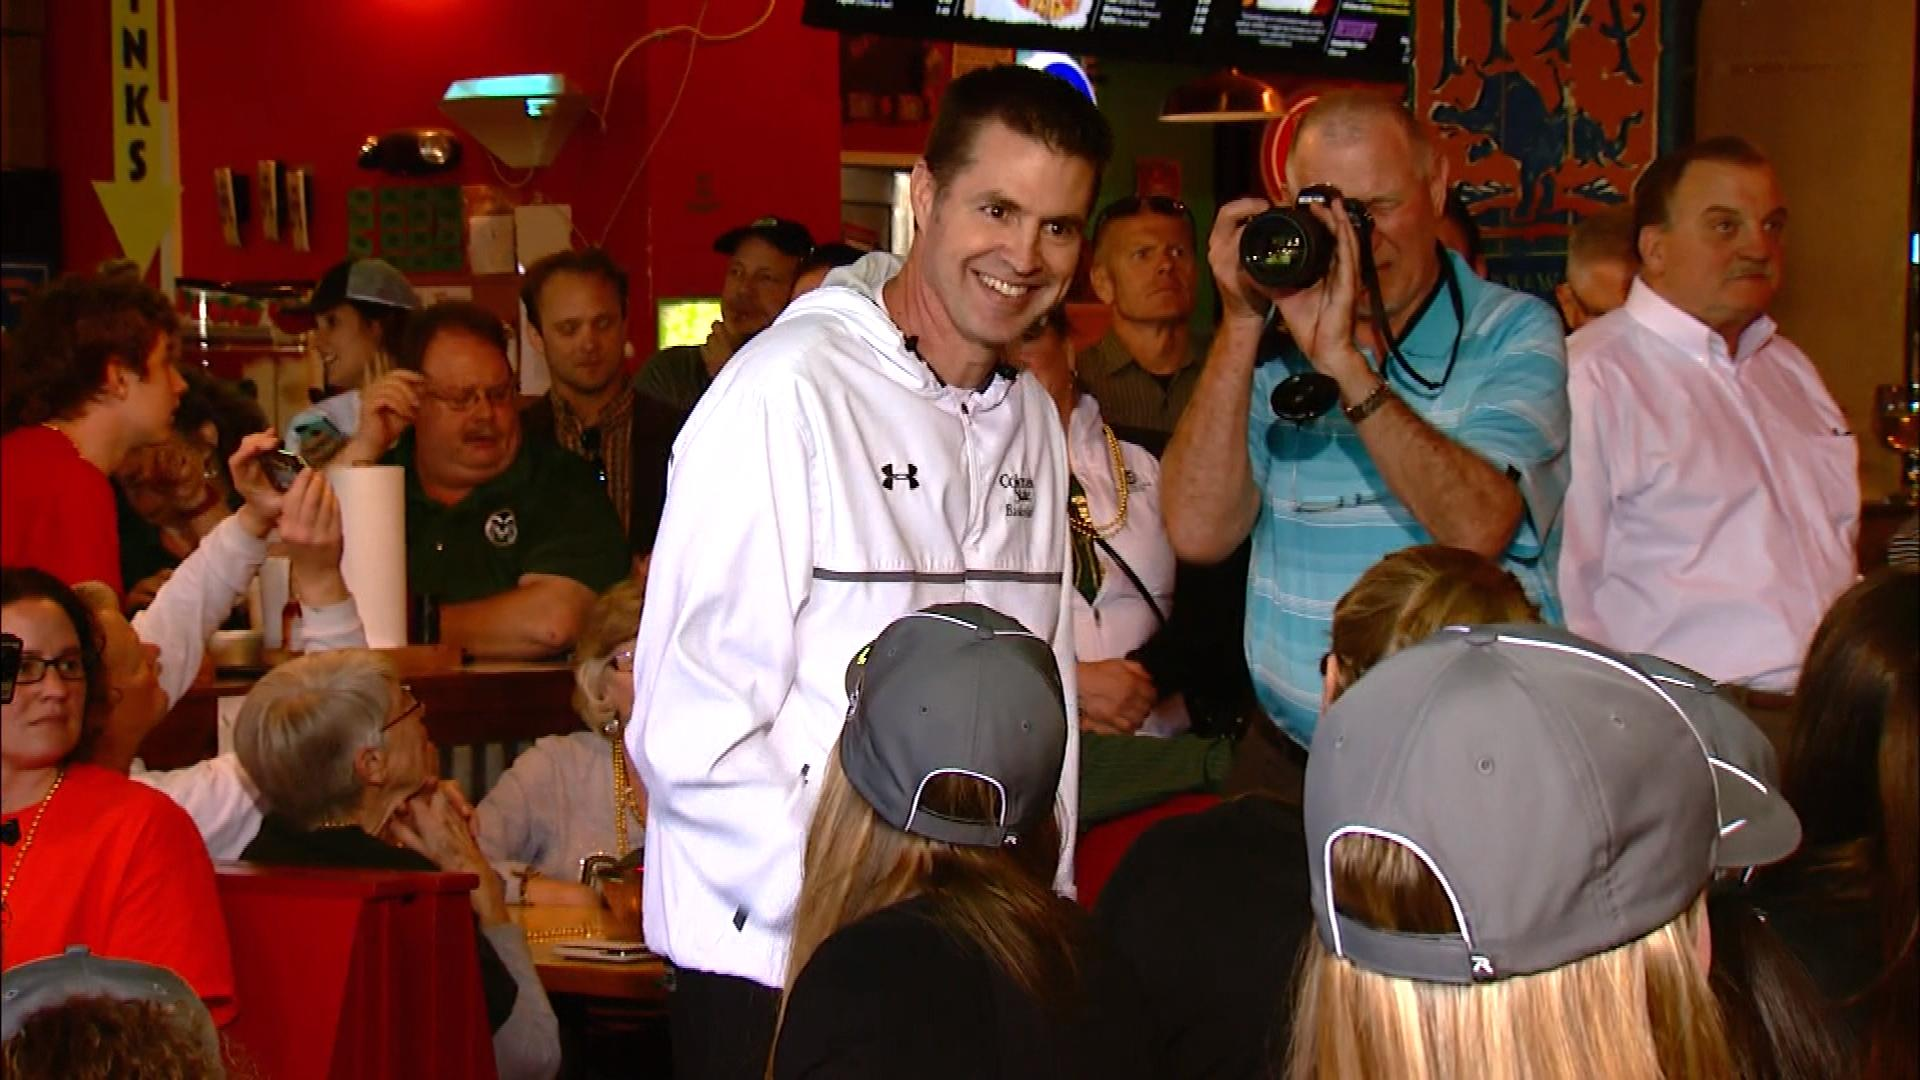 CSU head coach Ryun Williams with his team at the selection show party (credit: CBS)